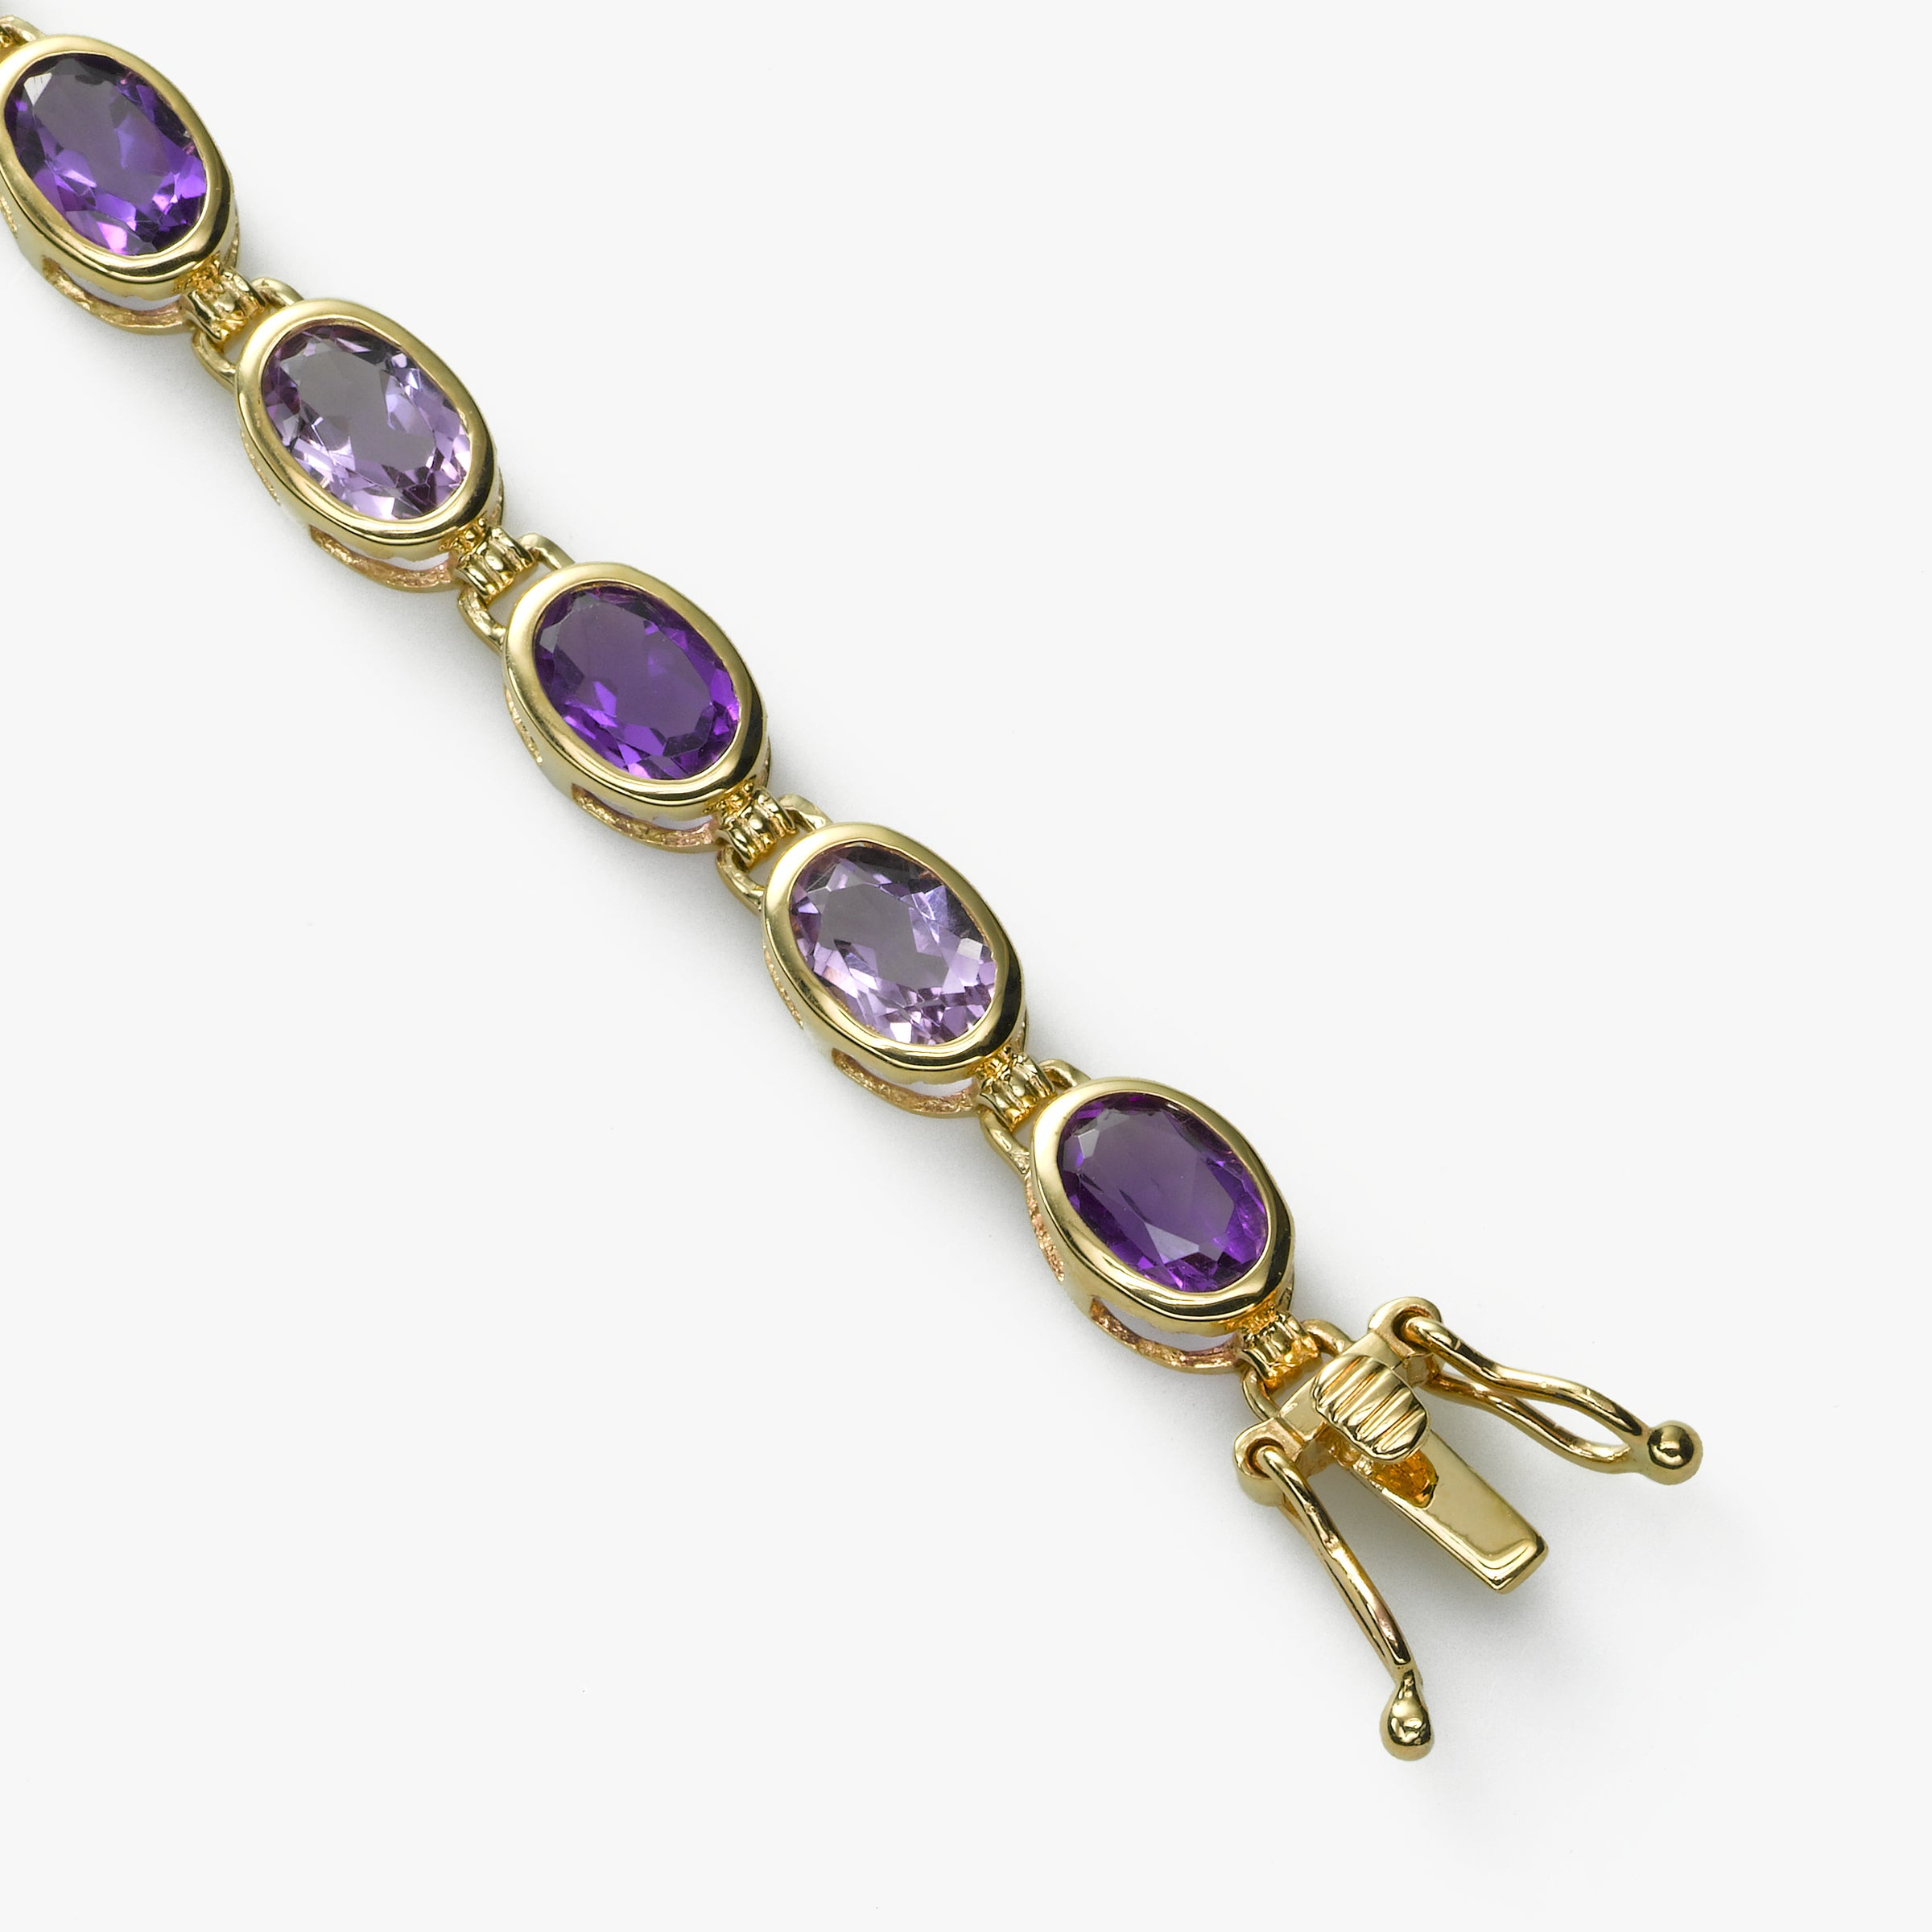 Oval Amethyst Gemstone Bracelet, 14K Yellow Gold